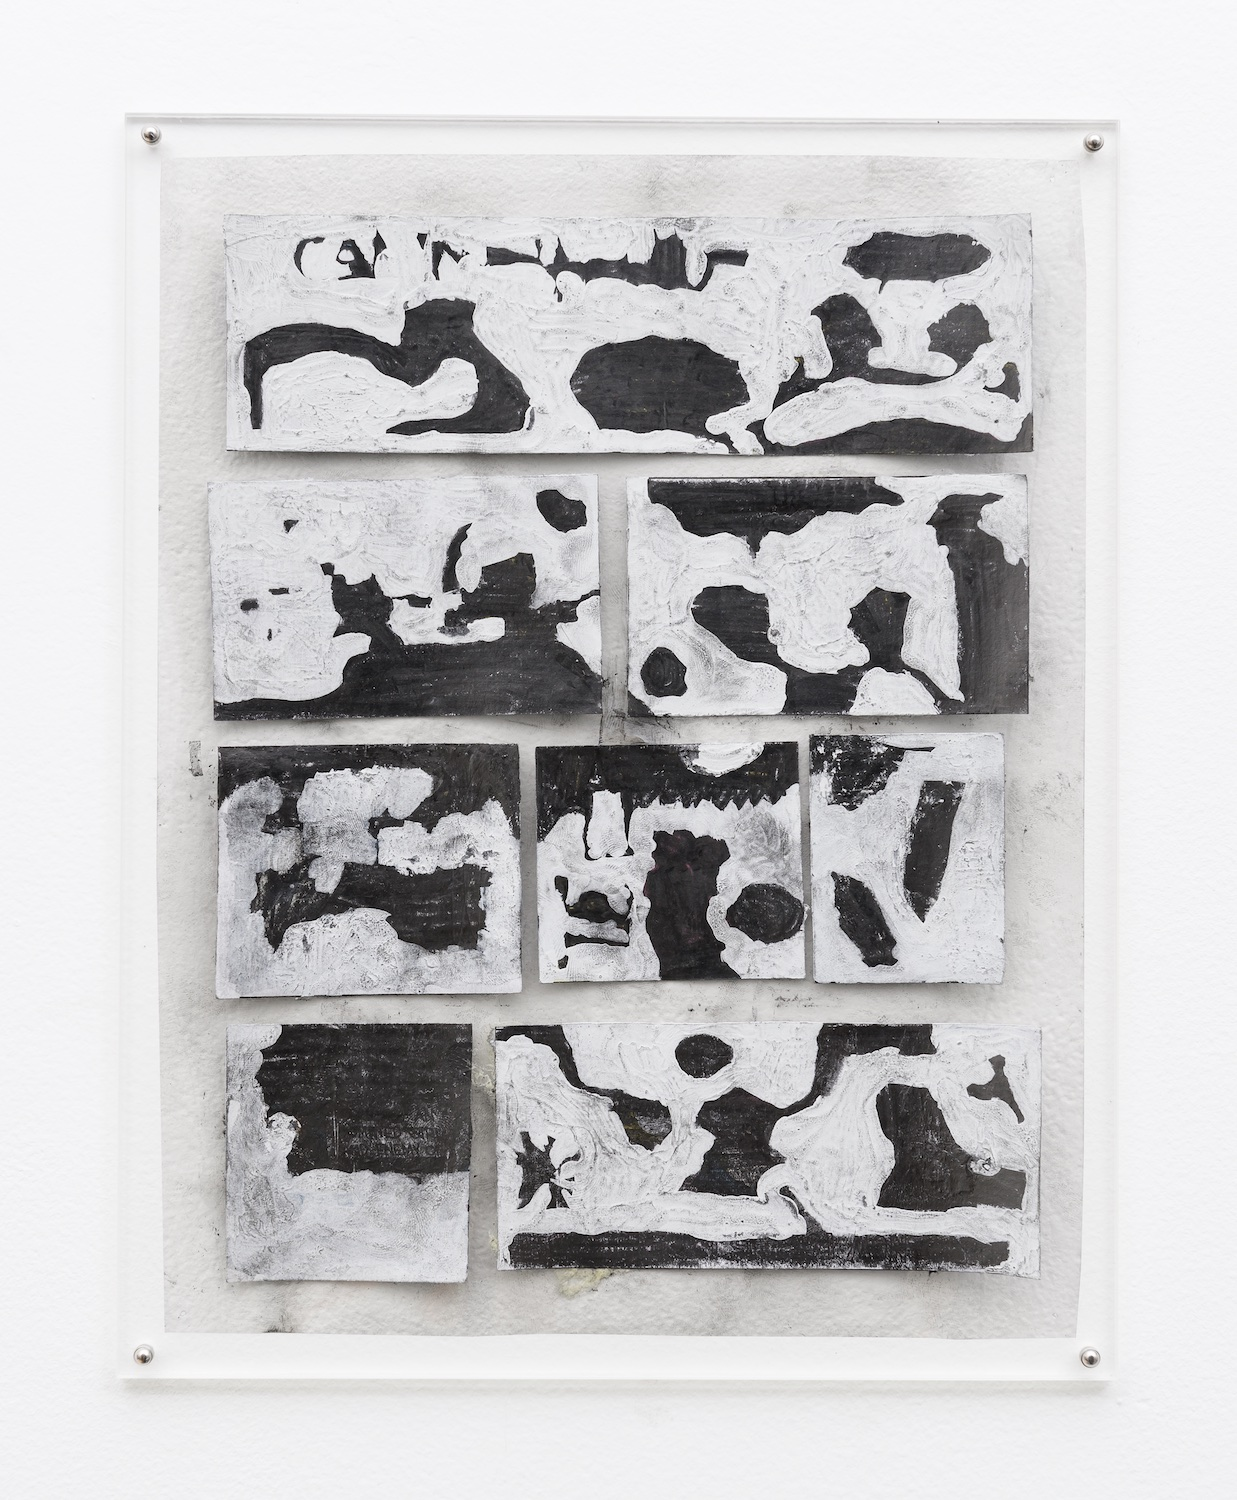 Tony Lewis  ...Also Known As Gym Class  2014 Pencil and graphite powder on paper and transparency 11h x 8 ½w in TL244